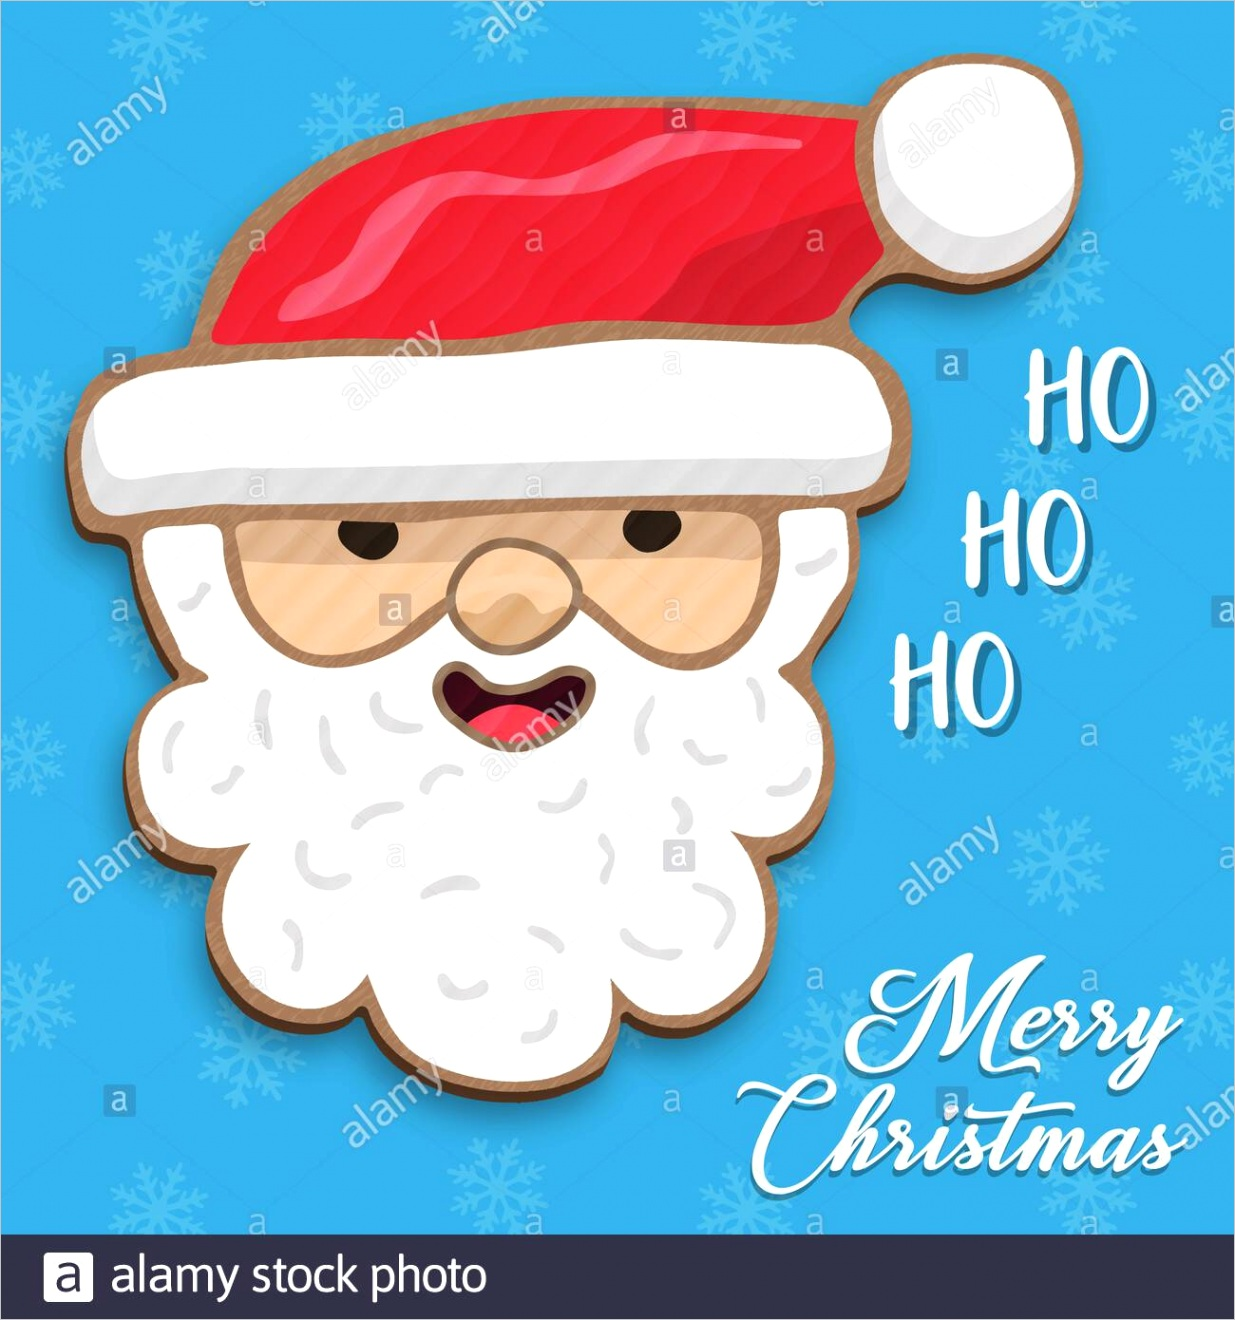 merry christmas greeting card illustration of funny santa claus face in hand drawn style traditional holiday character cartoon for xmas wishes or par image ml